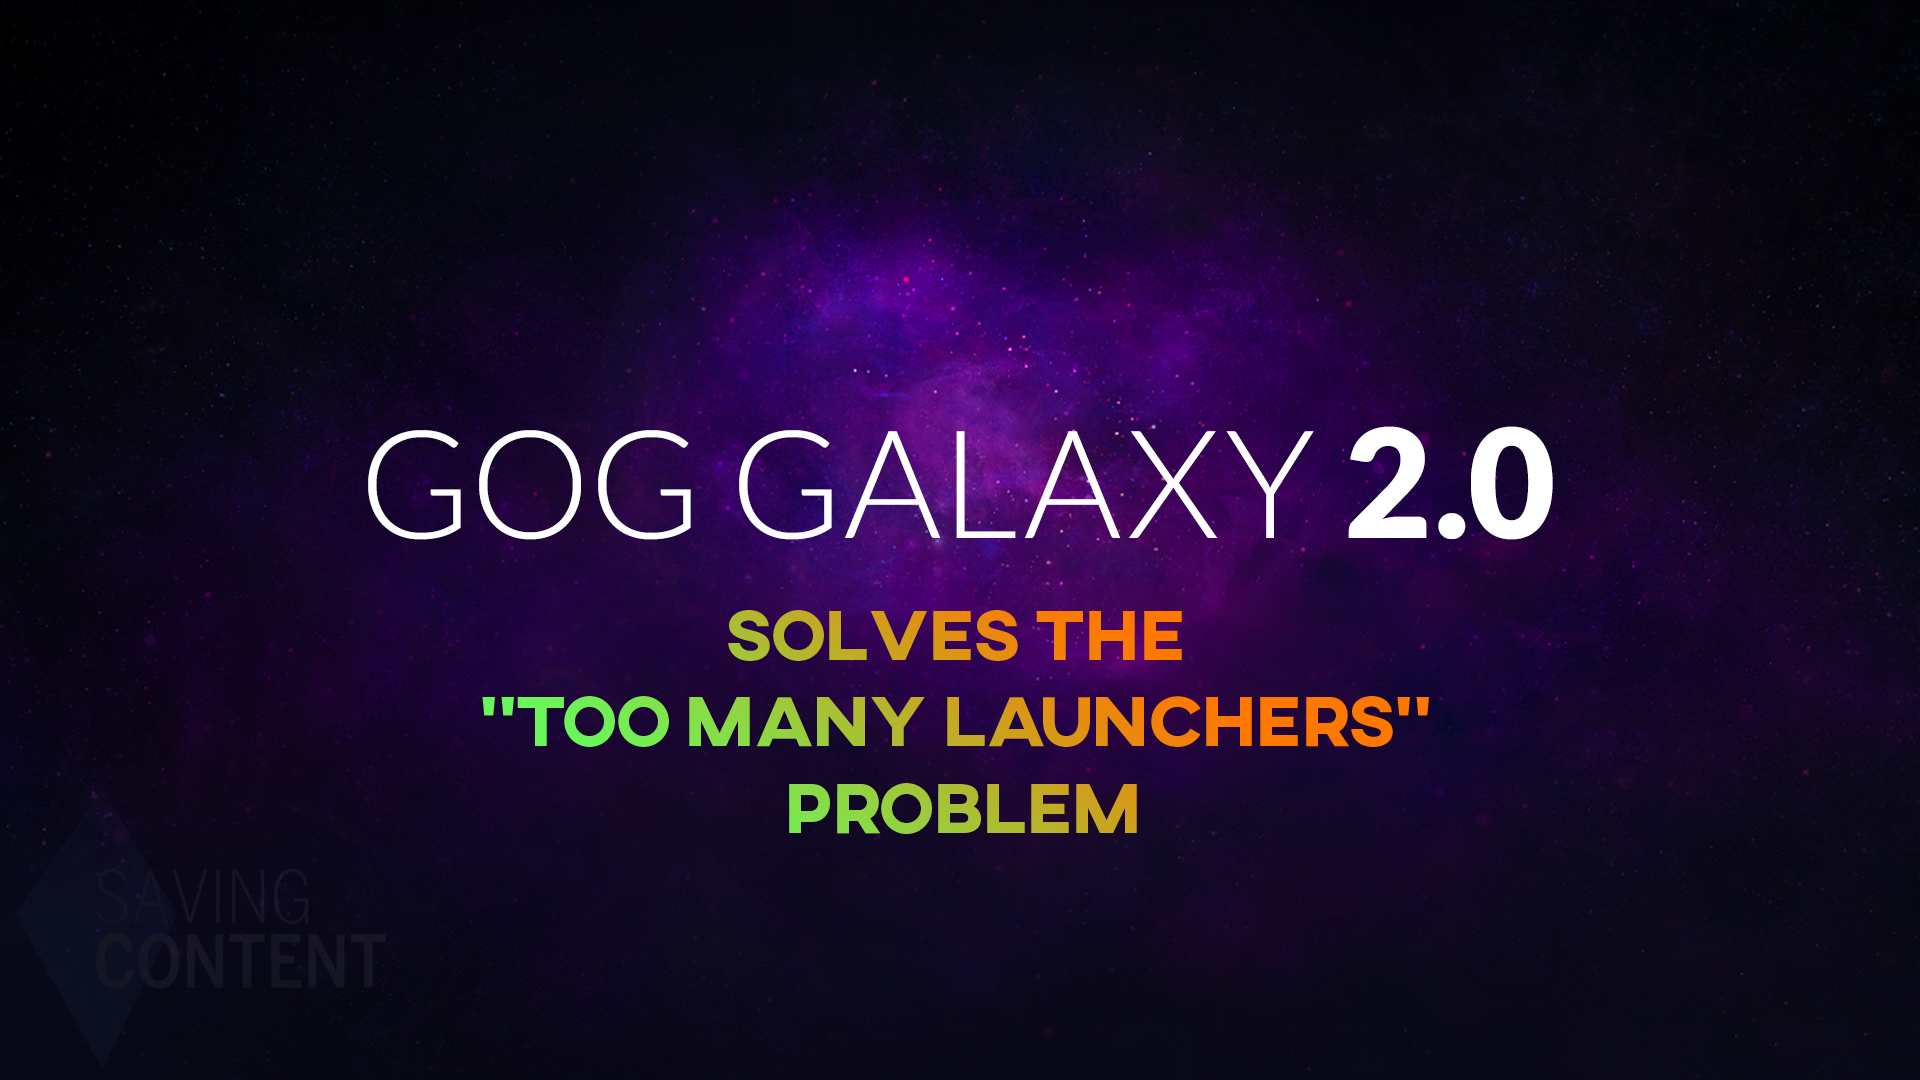 GOGGalaxy2.0 featured